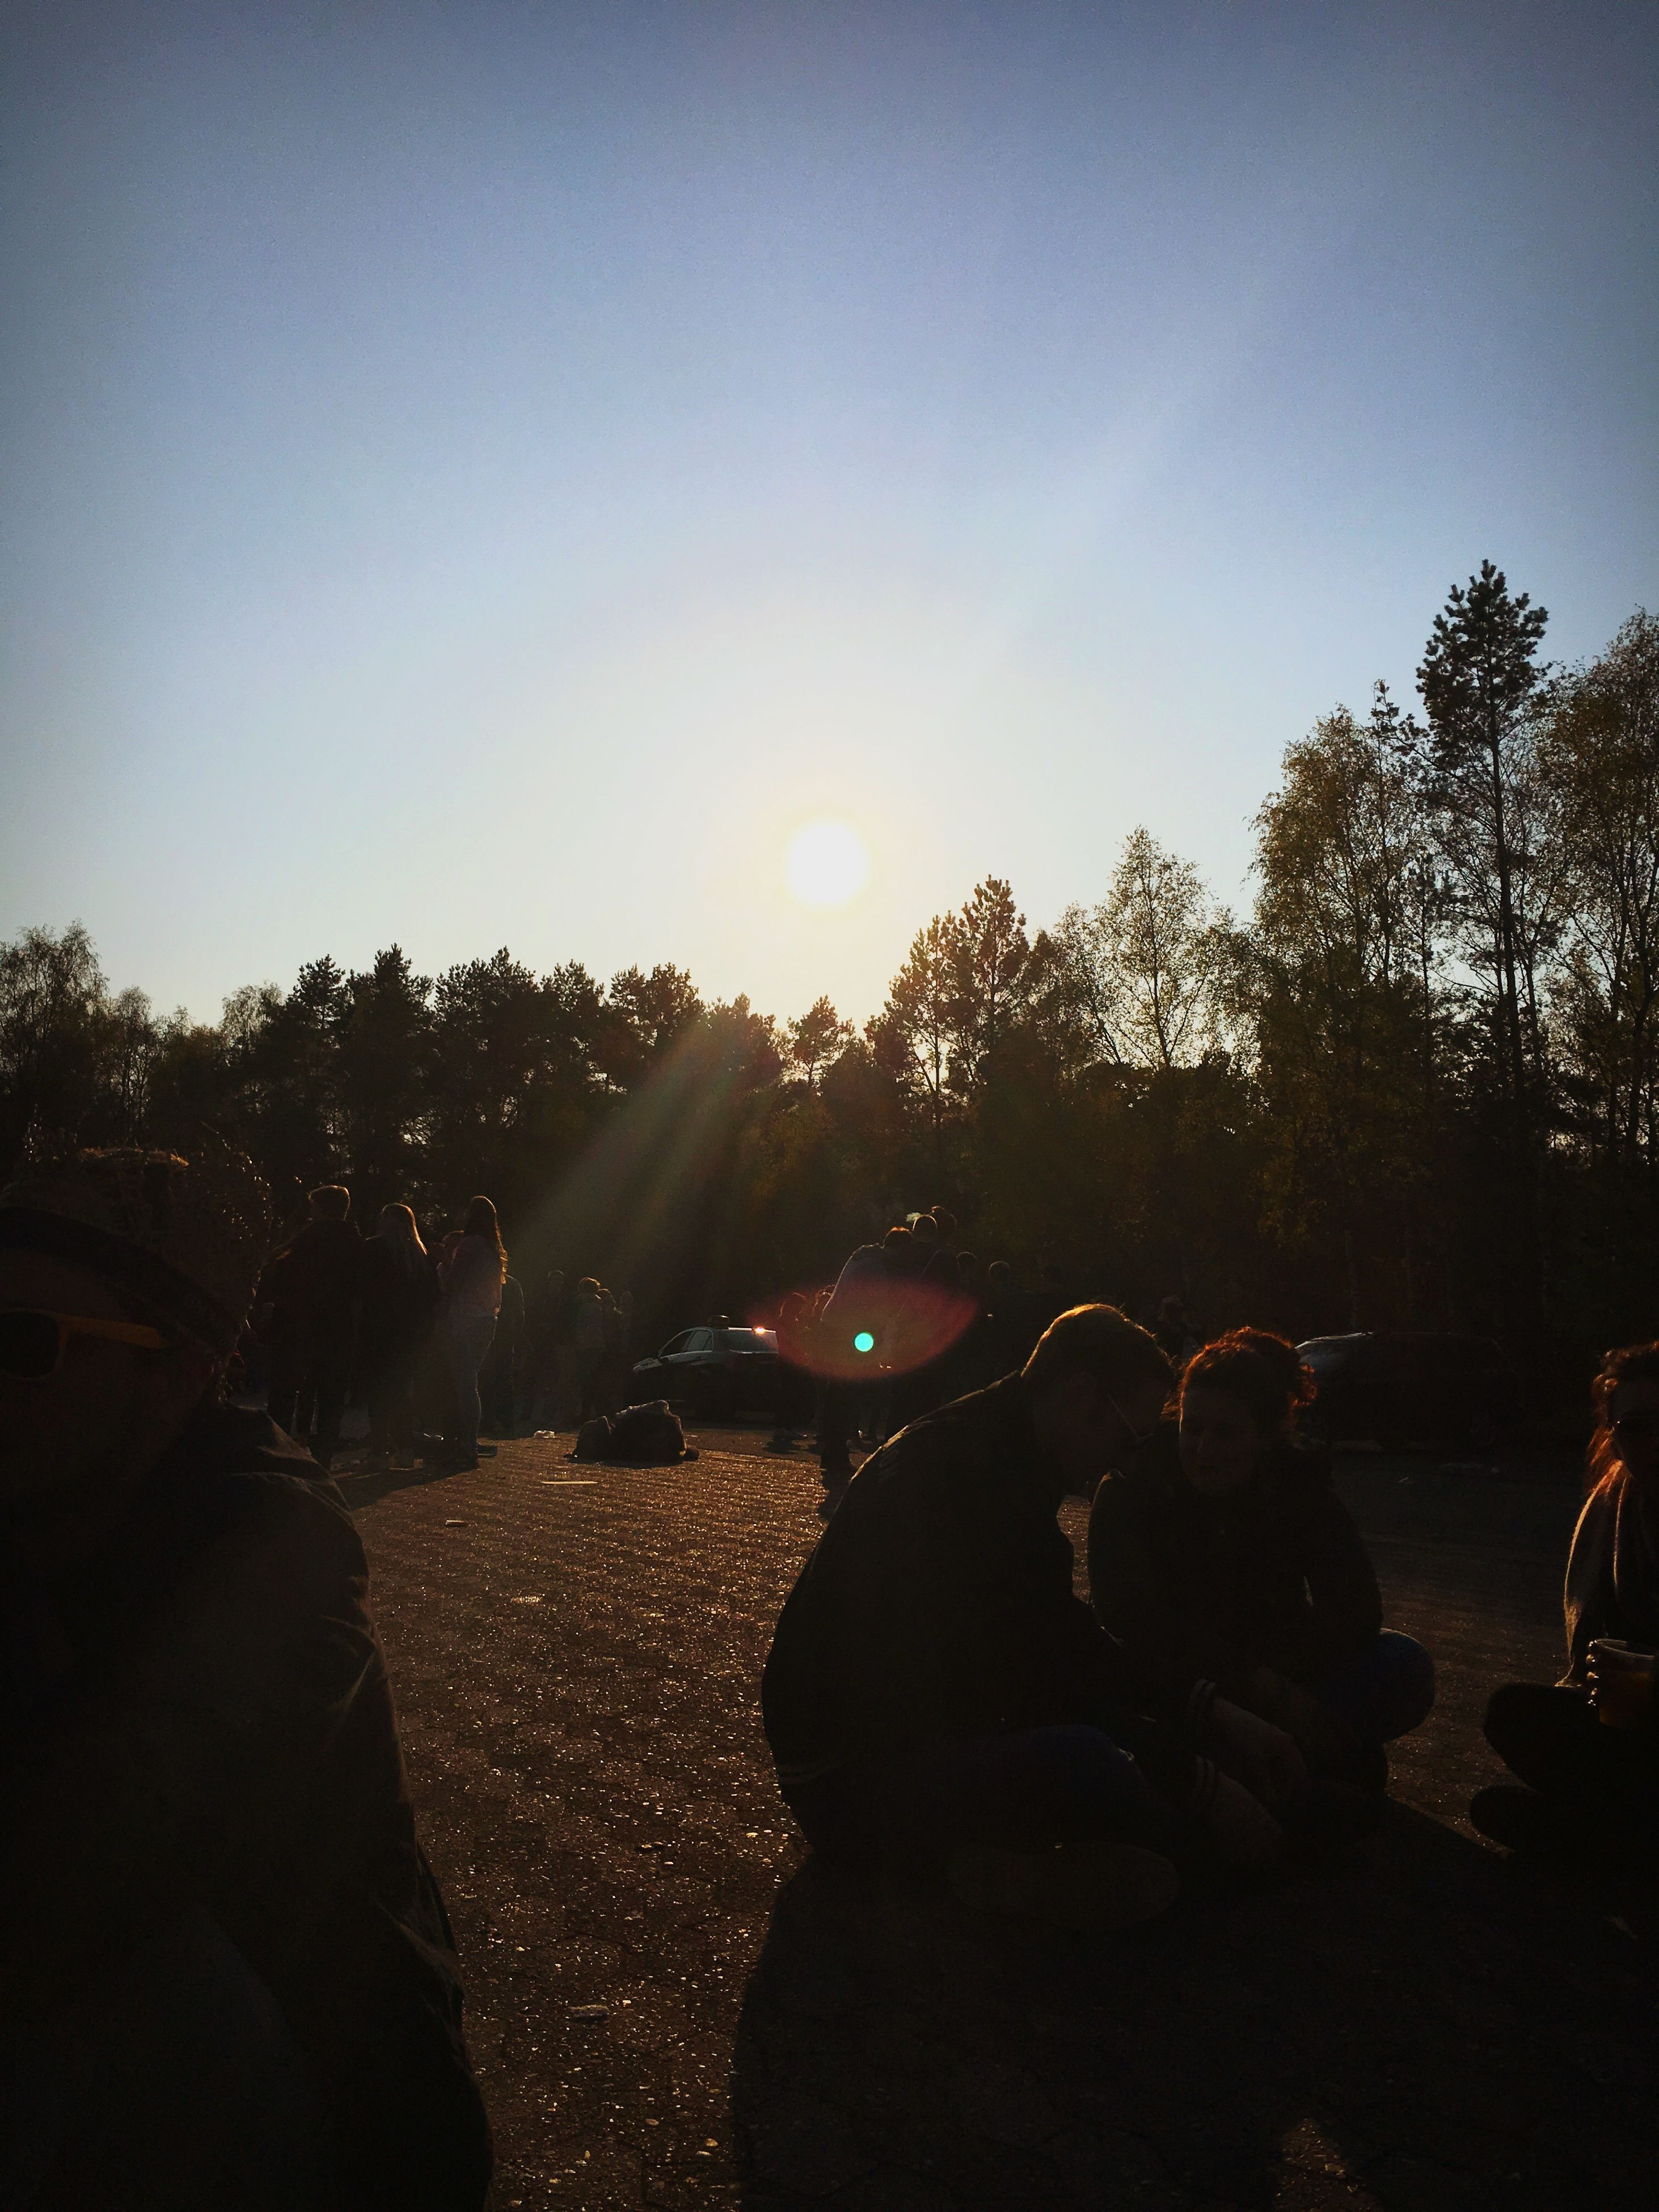 silhouette, sunset, tree, lifestyles, men, sun, leisure activity, sky, lens flare, clear sky, sunlight, large group of people, sunbeam, person, land vehicle, unrecognizable person, car, transportation, outdoors